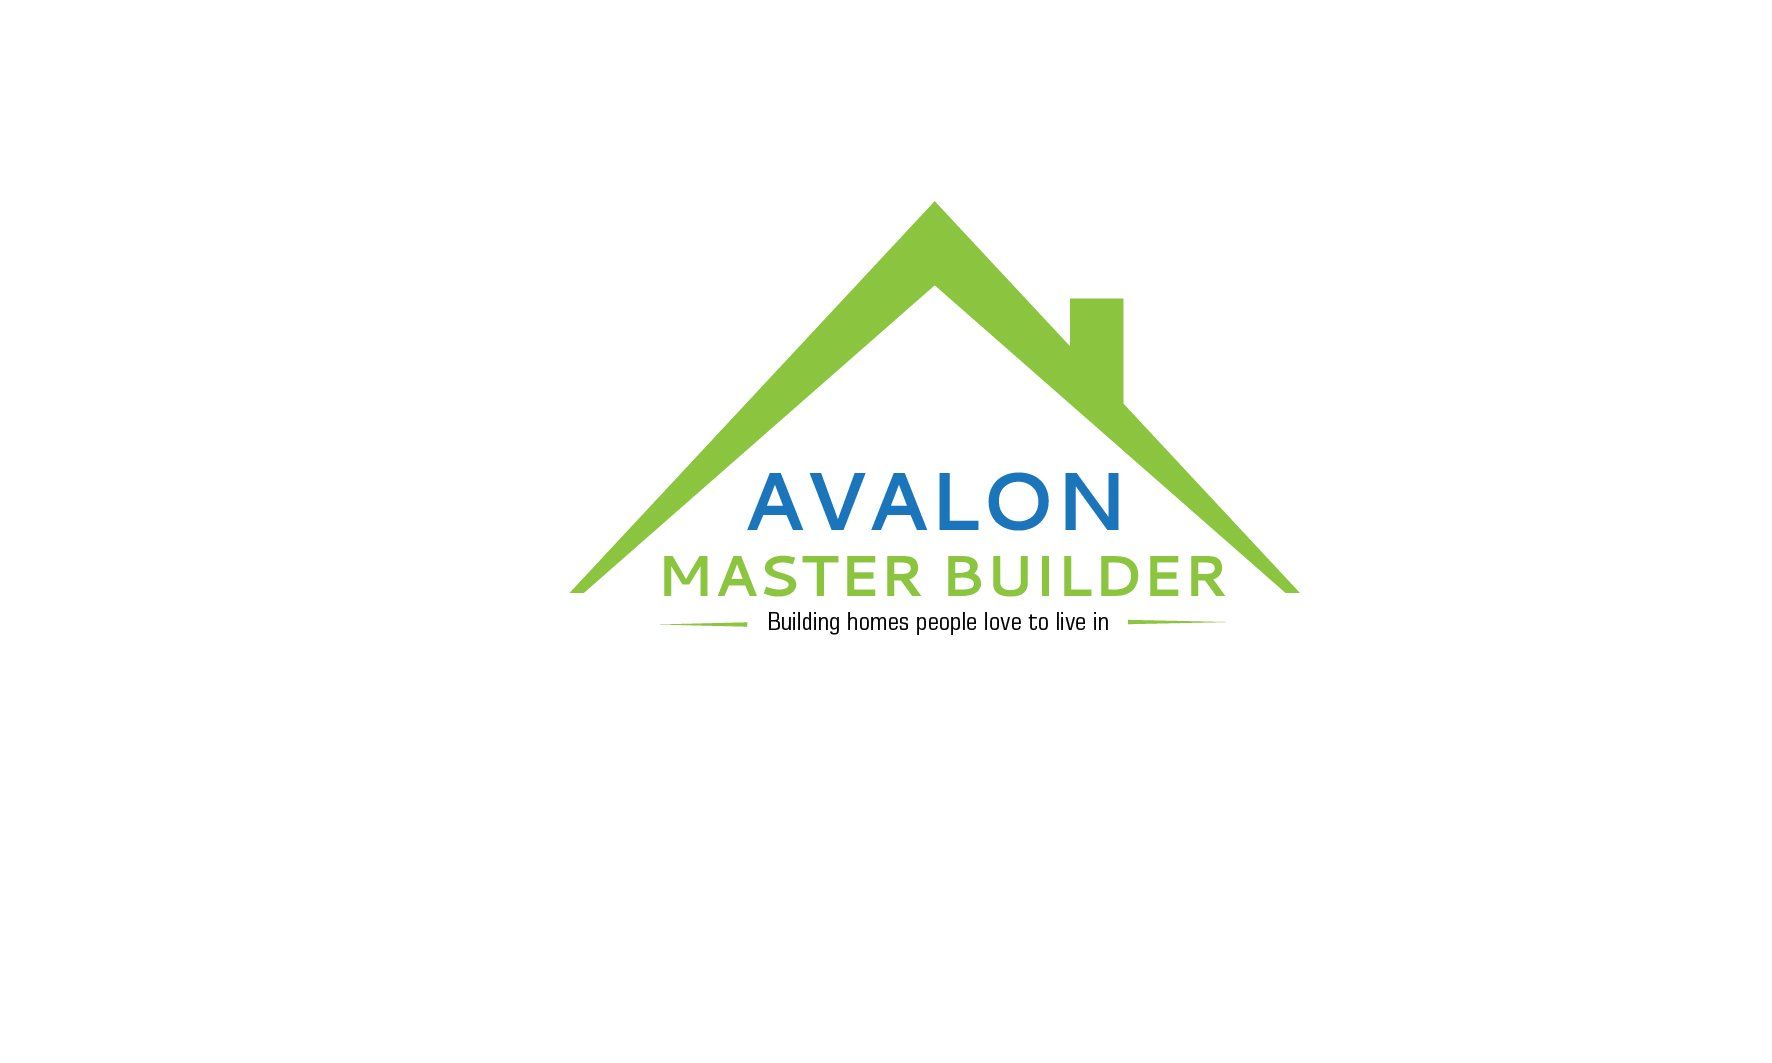 Logo Design by 3draw - Entry No. 15 in the Logo Design Contest Avalon Master Builder Logo Design.